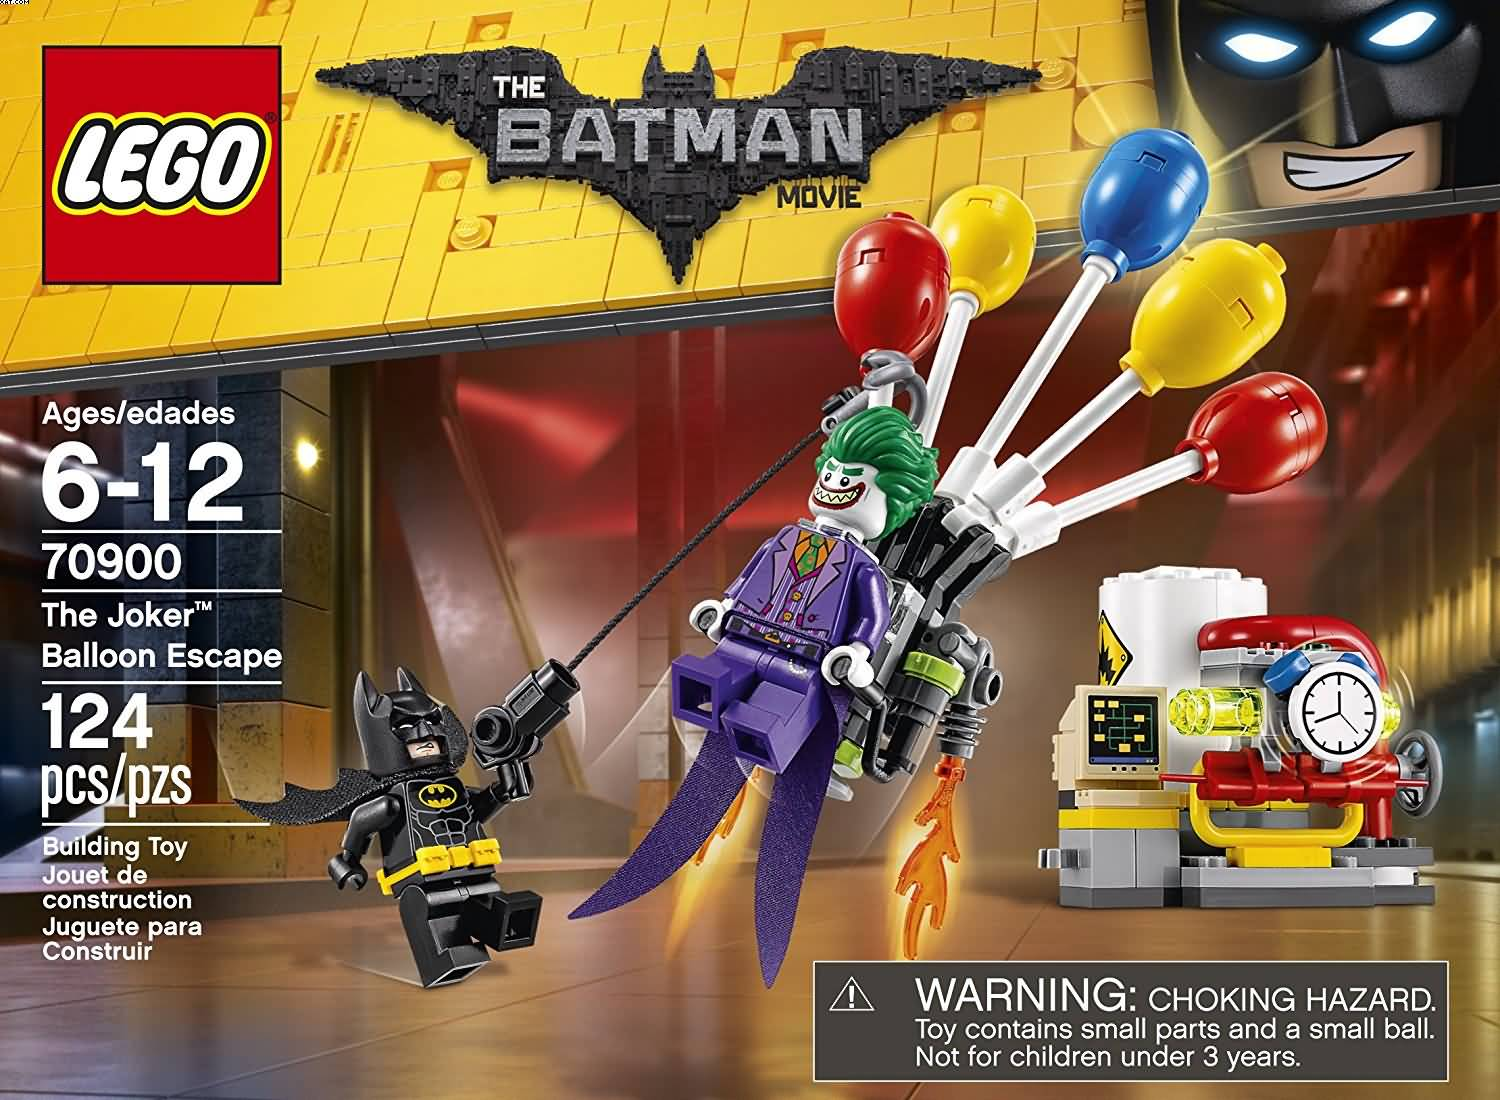 Lego 70900 The Batman Movie The Joker Ballon Escape 124 Piezas